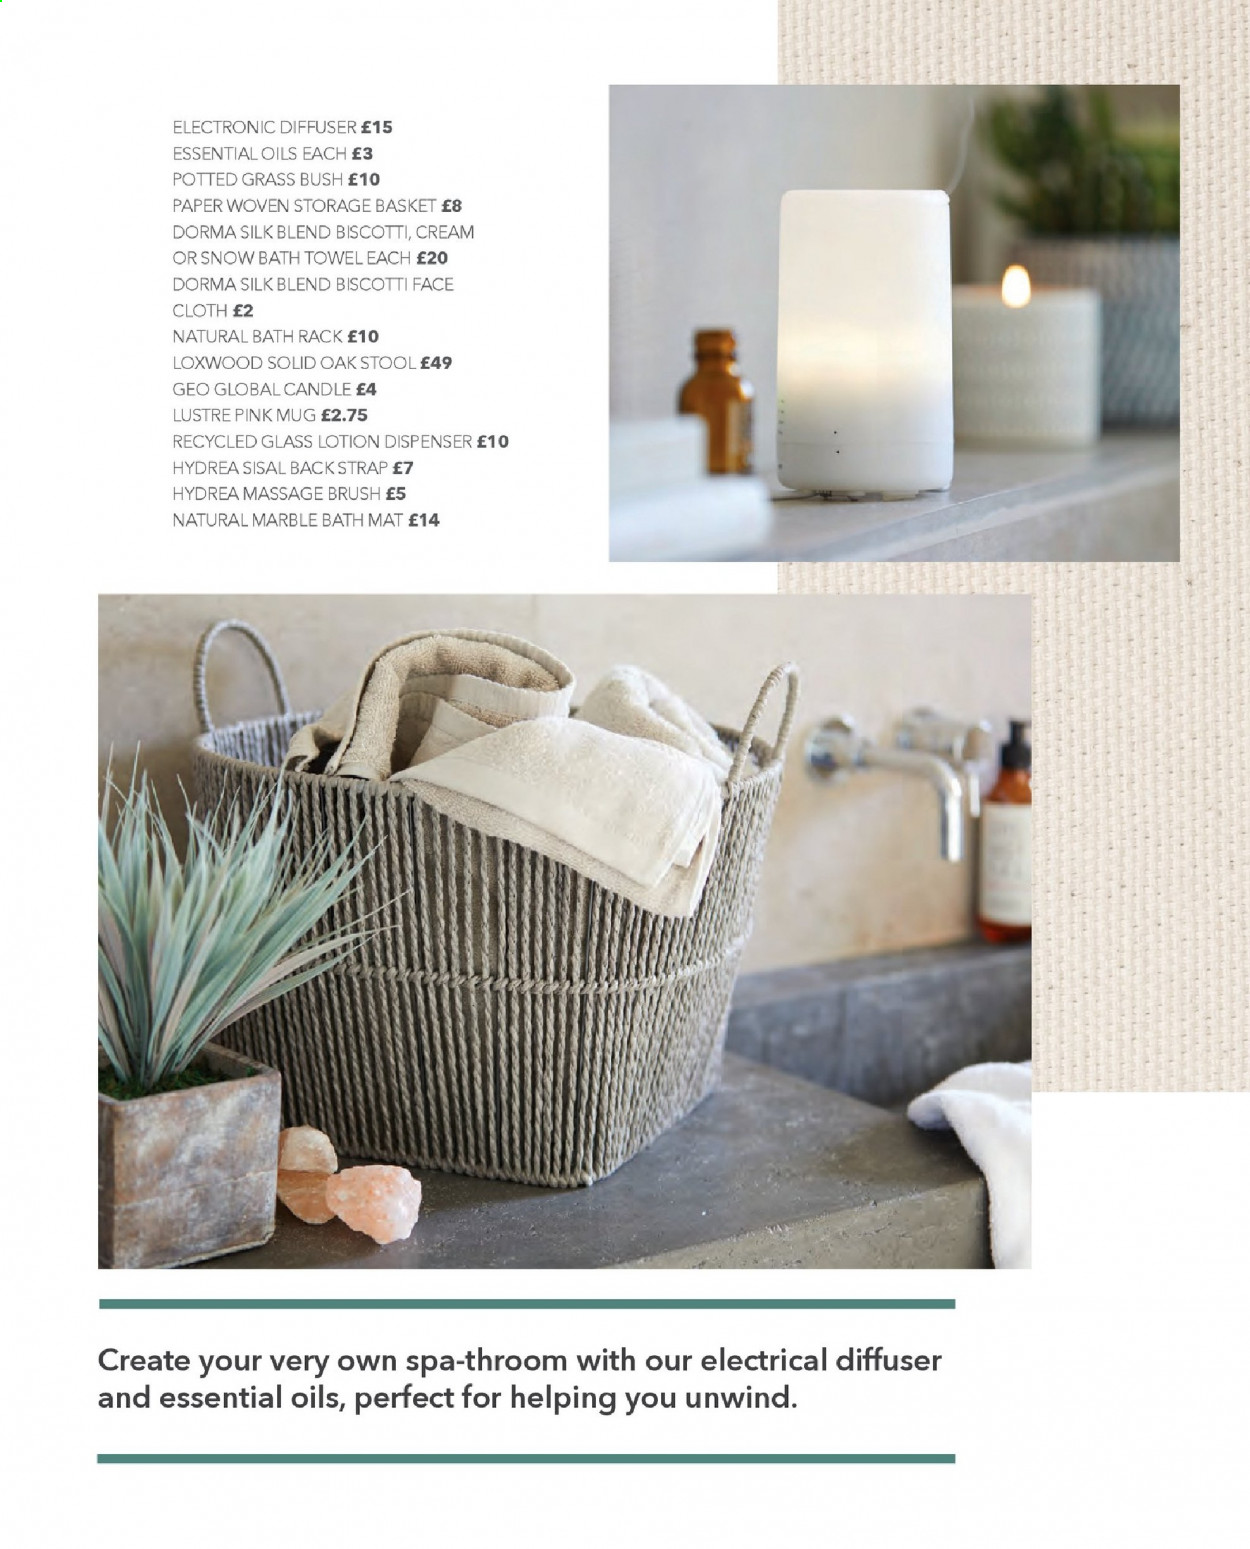 Dunelm offer  - Sales products - basket, bath, bath mat, bath towel, biscotti, brush, candle, cream, diffuser, dispenser, essential oil, glass, mat, mug, rack, stool, storage, strap, towel, paper. Page 40.